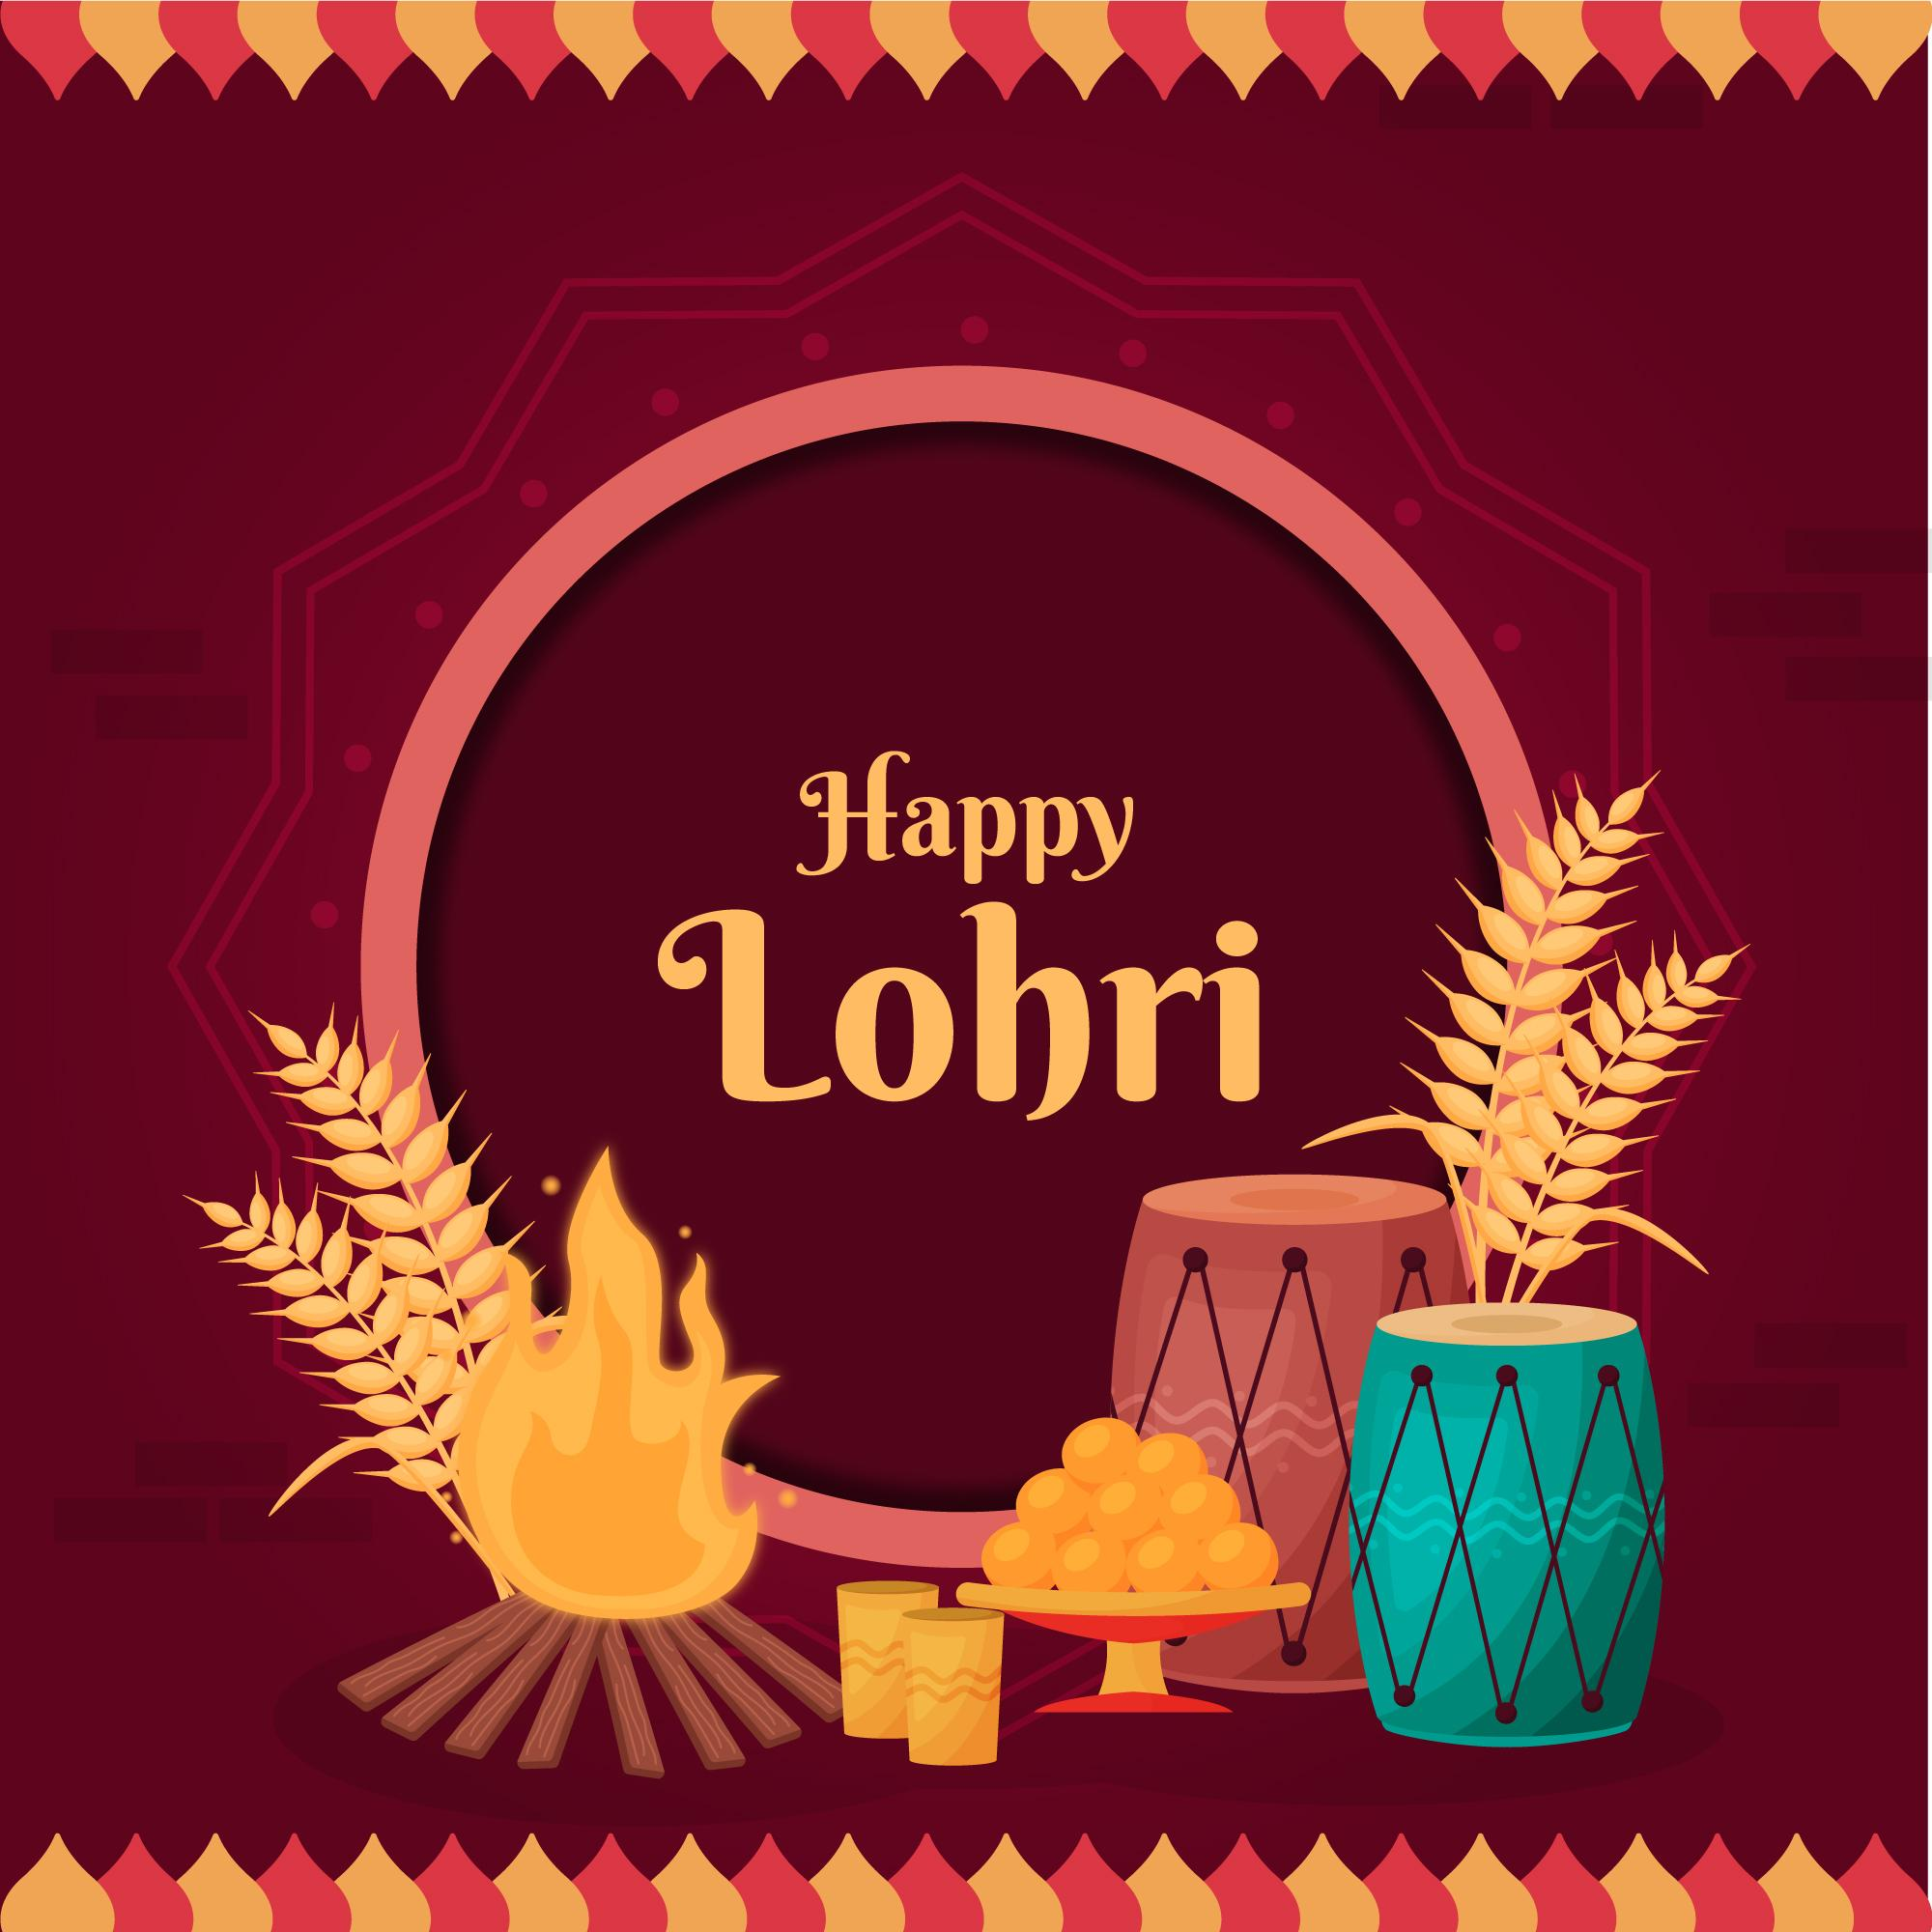 Happy Lohri text with red background